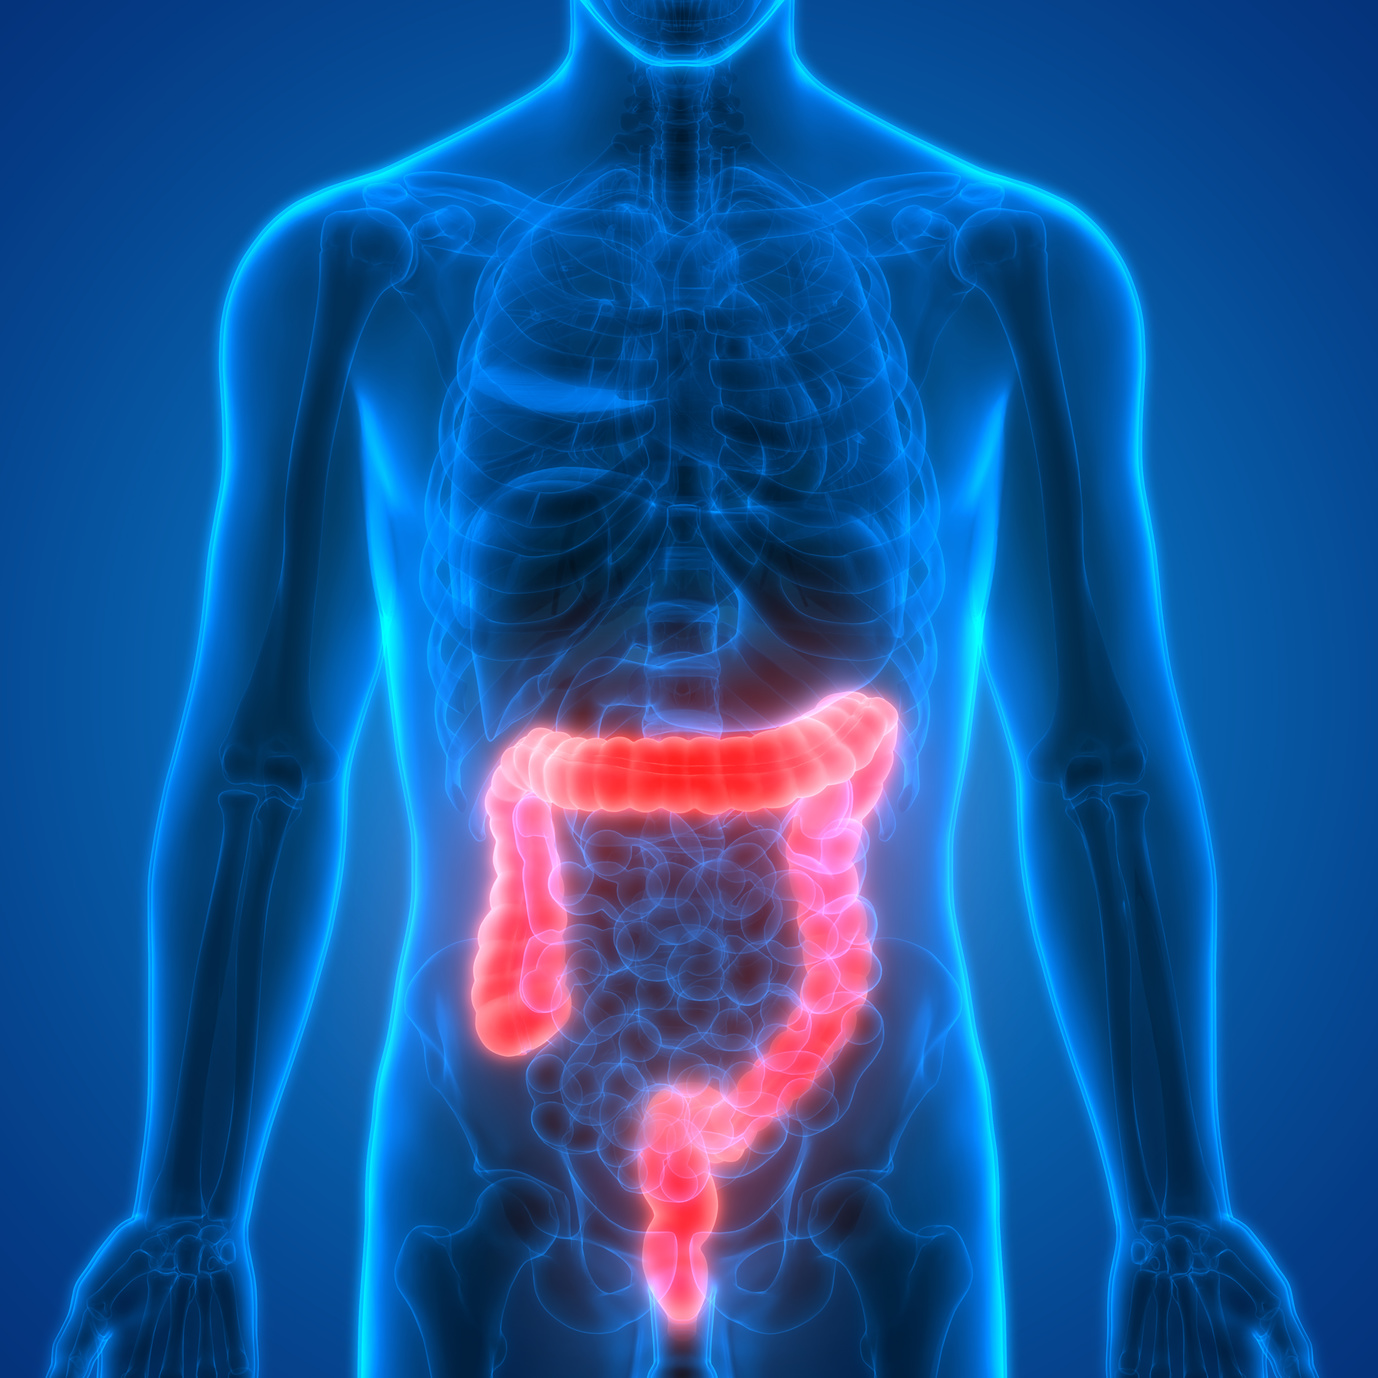 maintrac® for colorectal cancer (carcinoma of the colon)